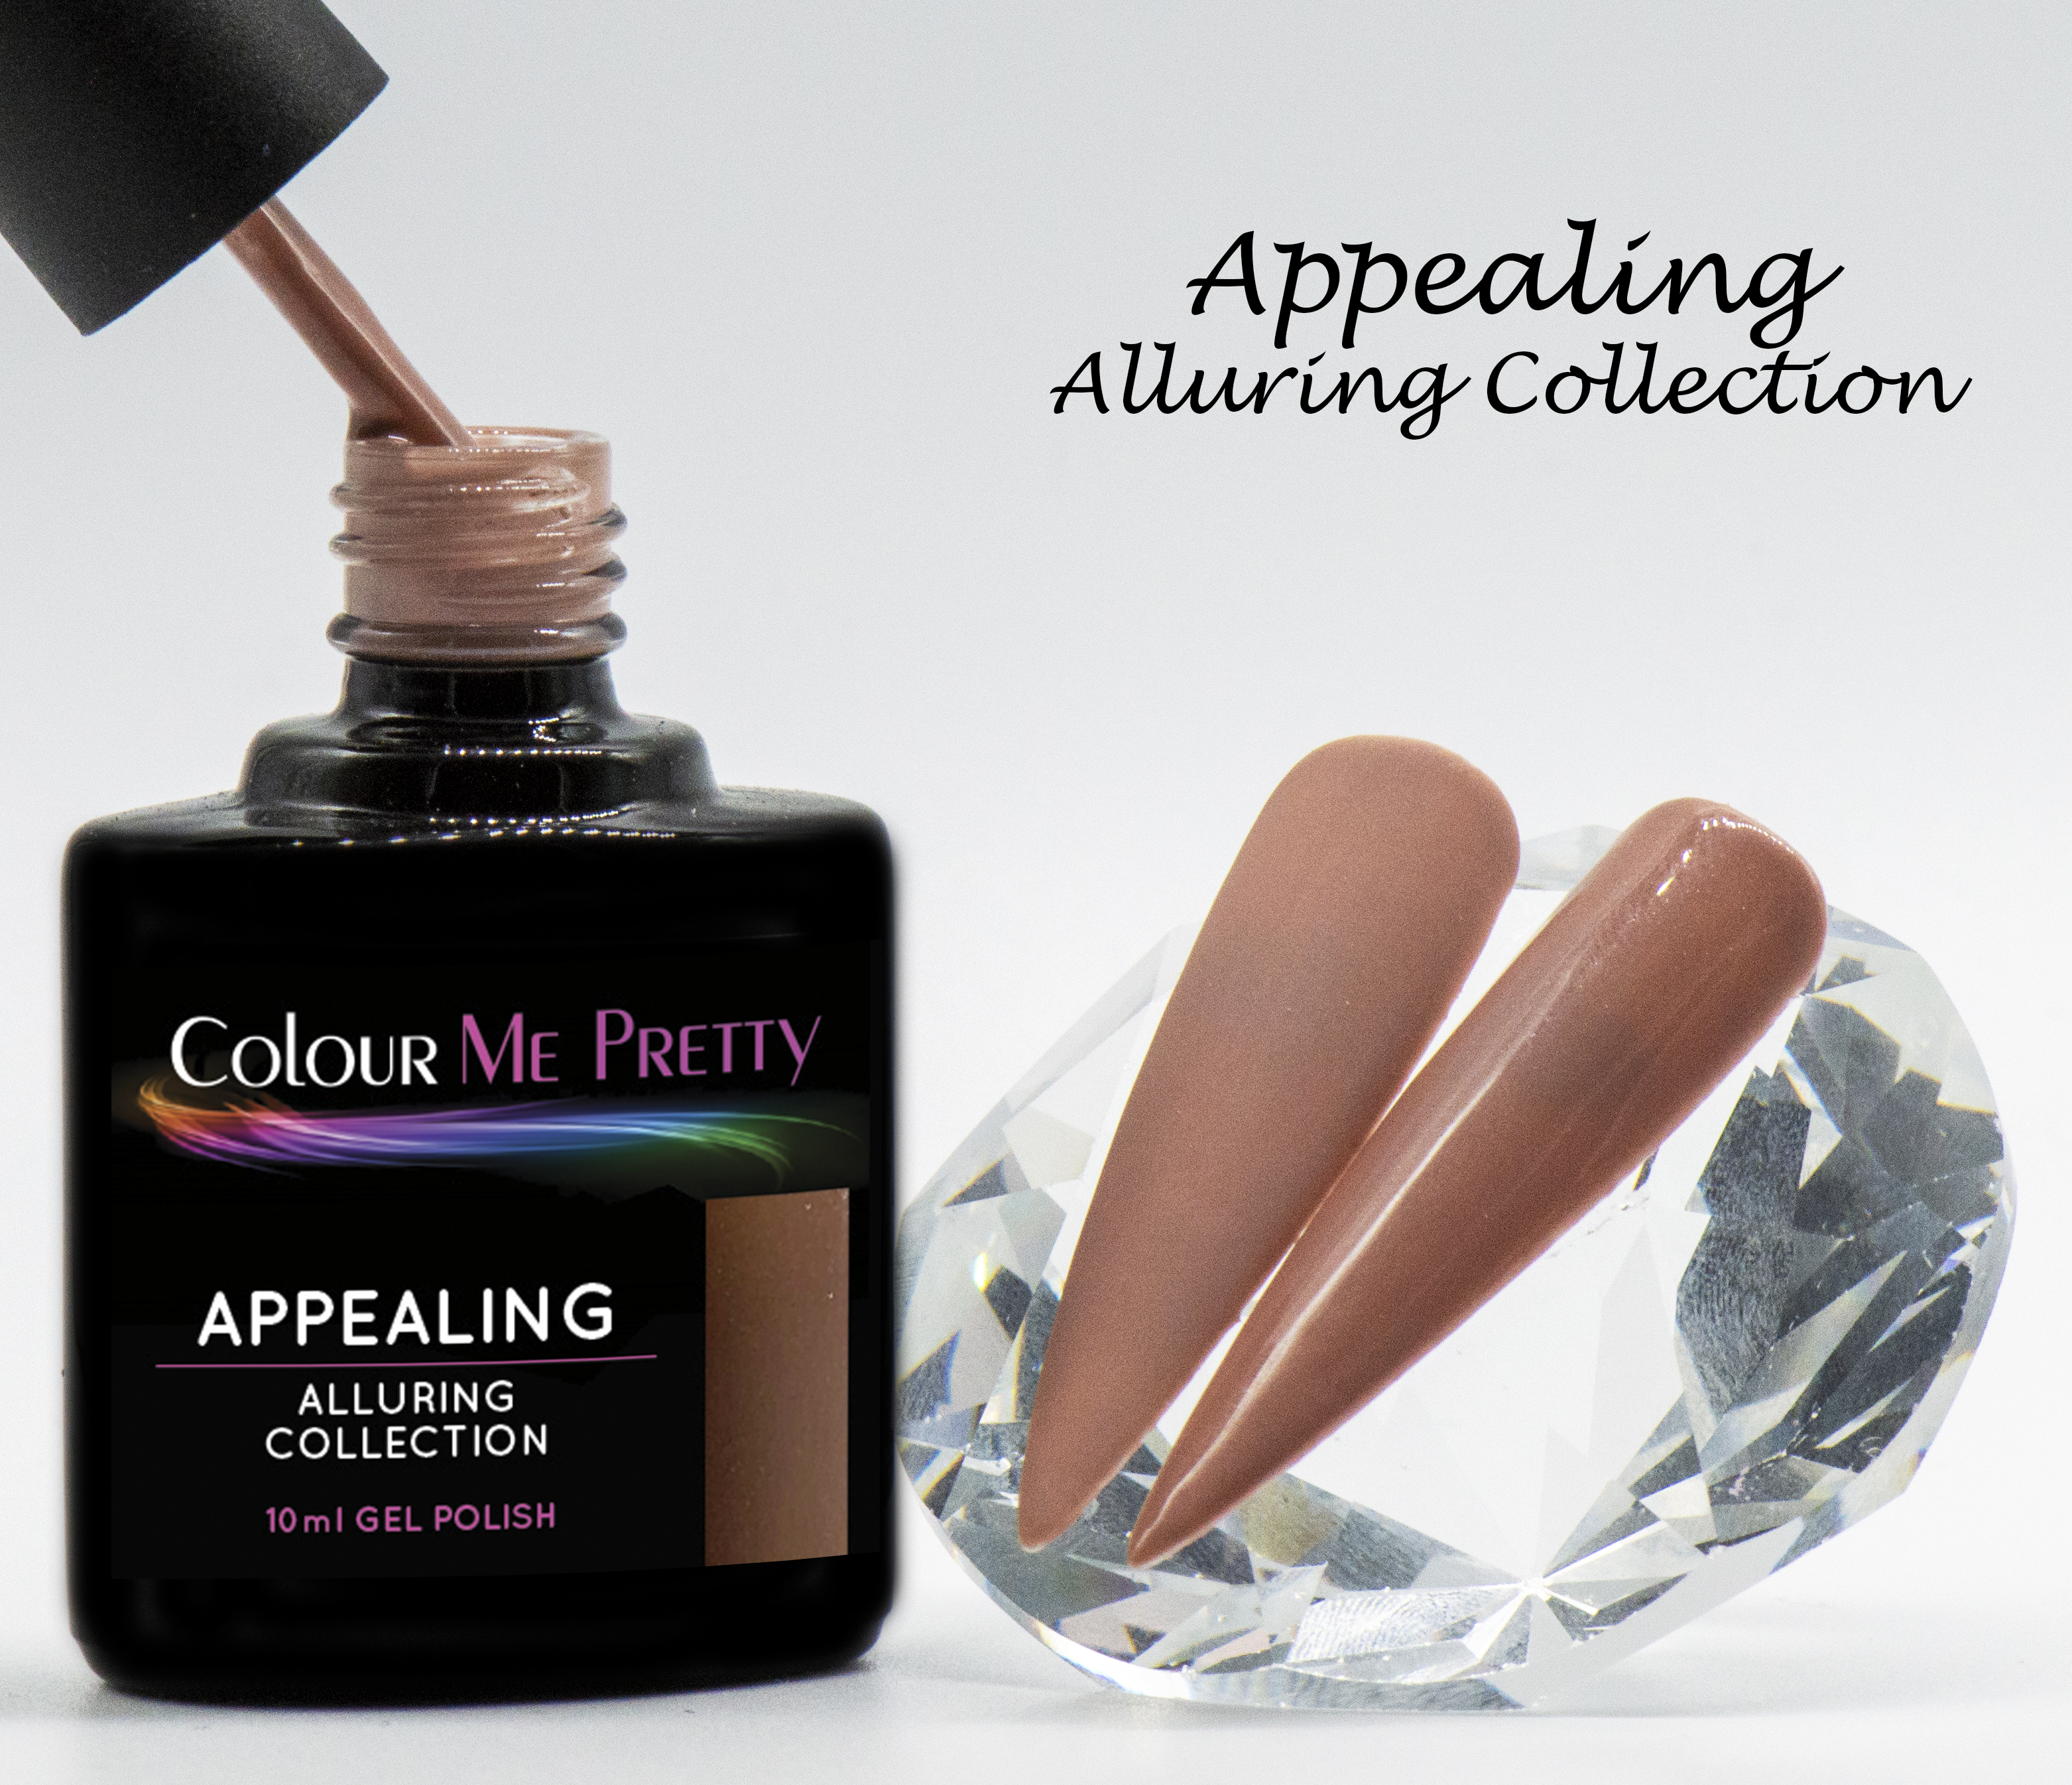 Alluring Appealing